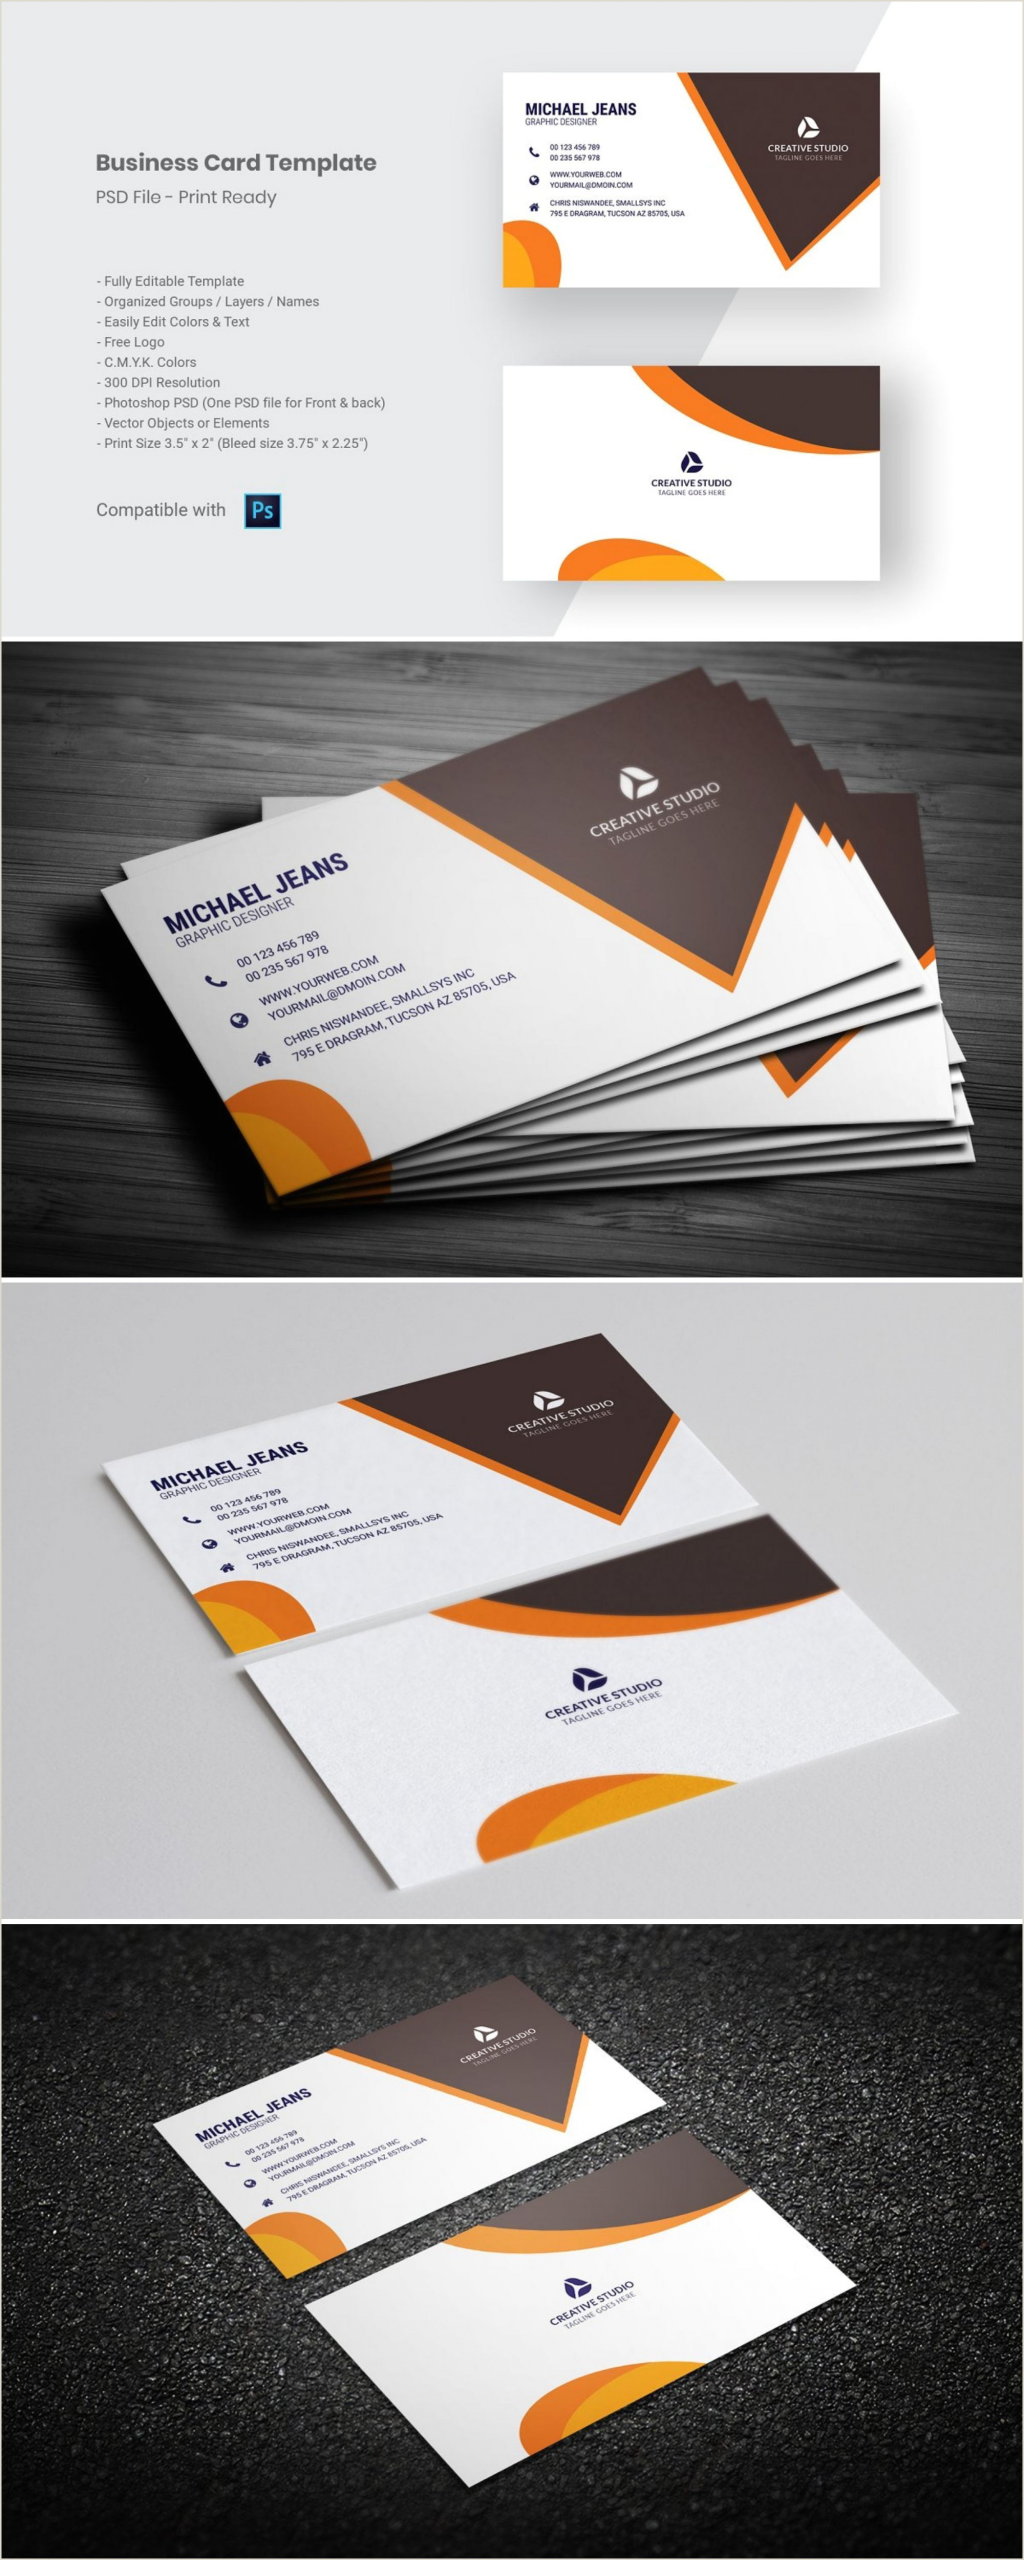 Print Out Business Cards Modern Business Card Template